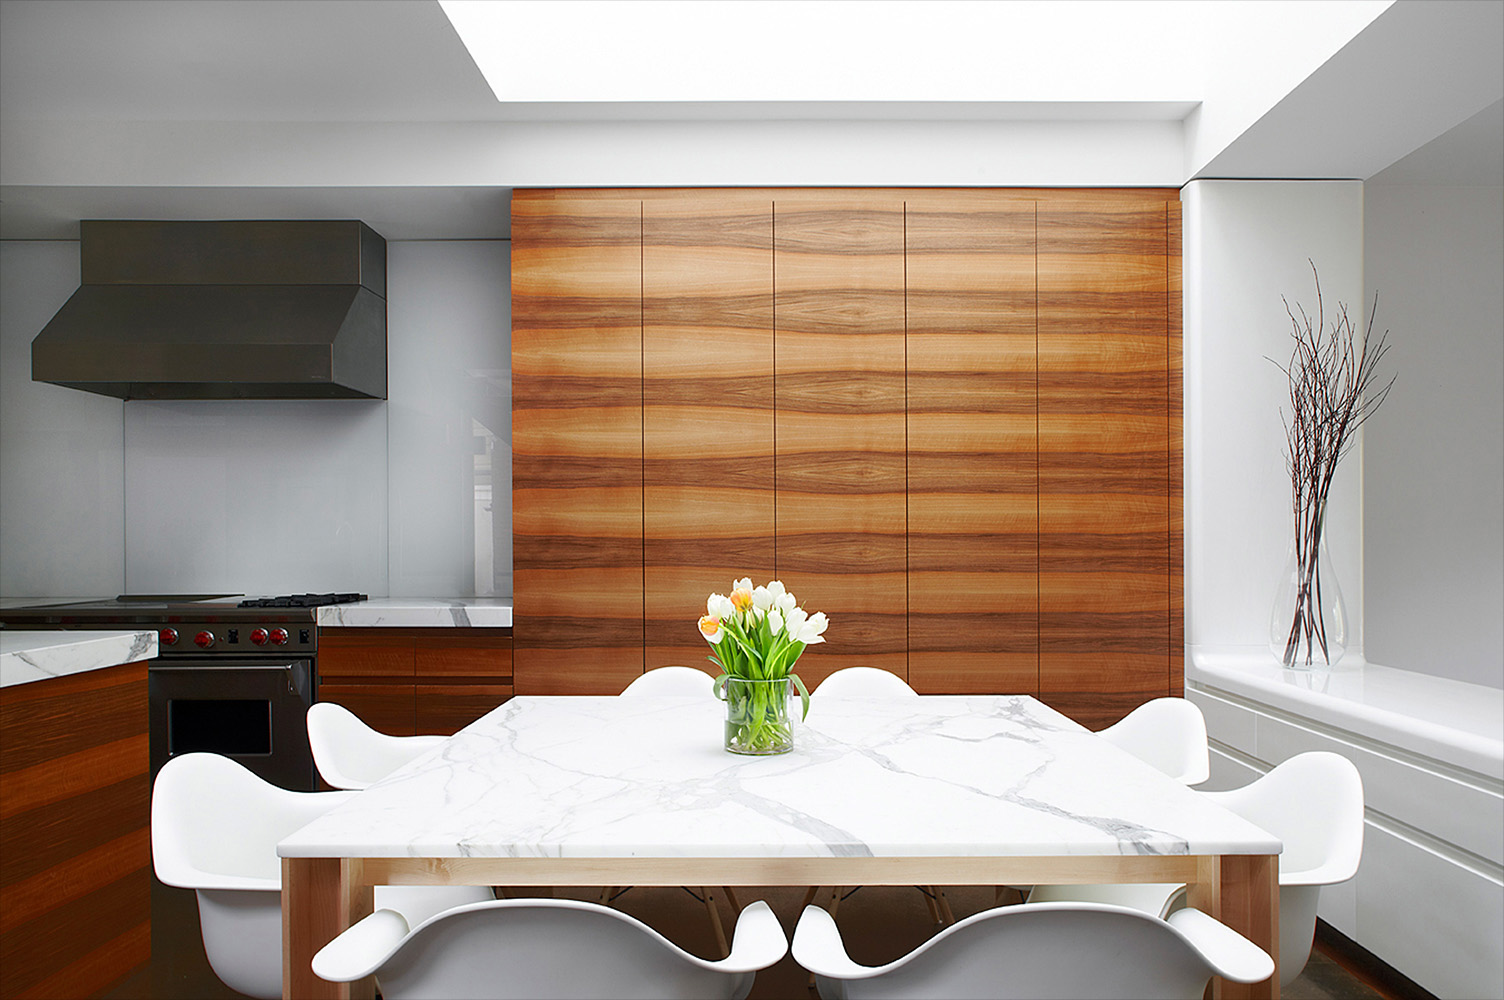 Contemporary dining room with floor-to-ceiling French Walnut cabinetry